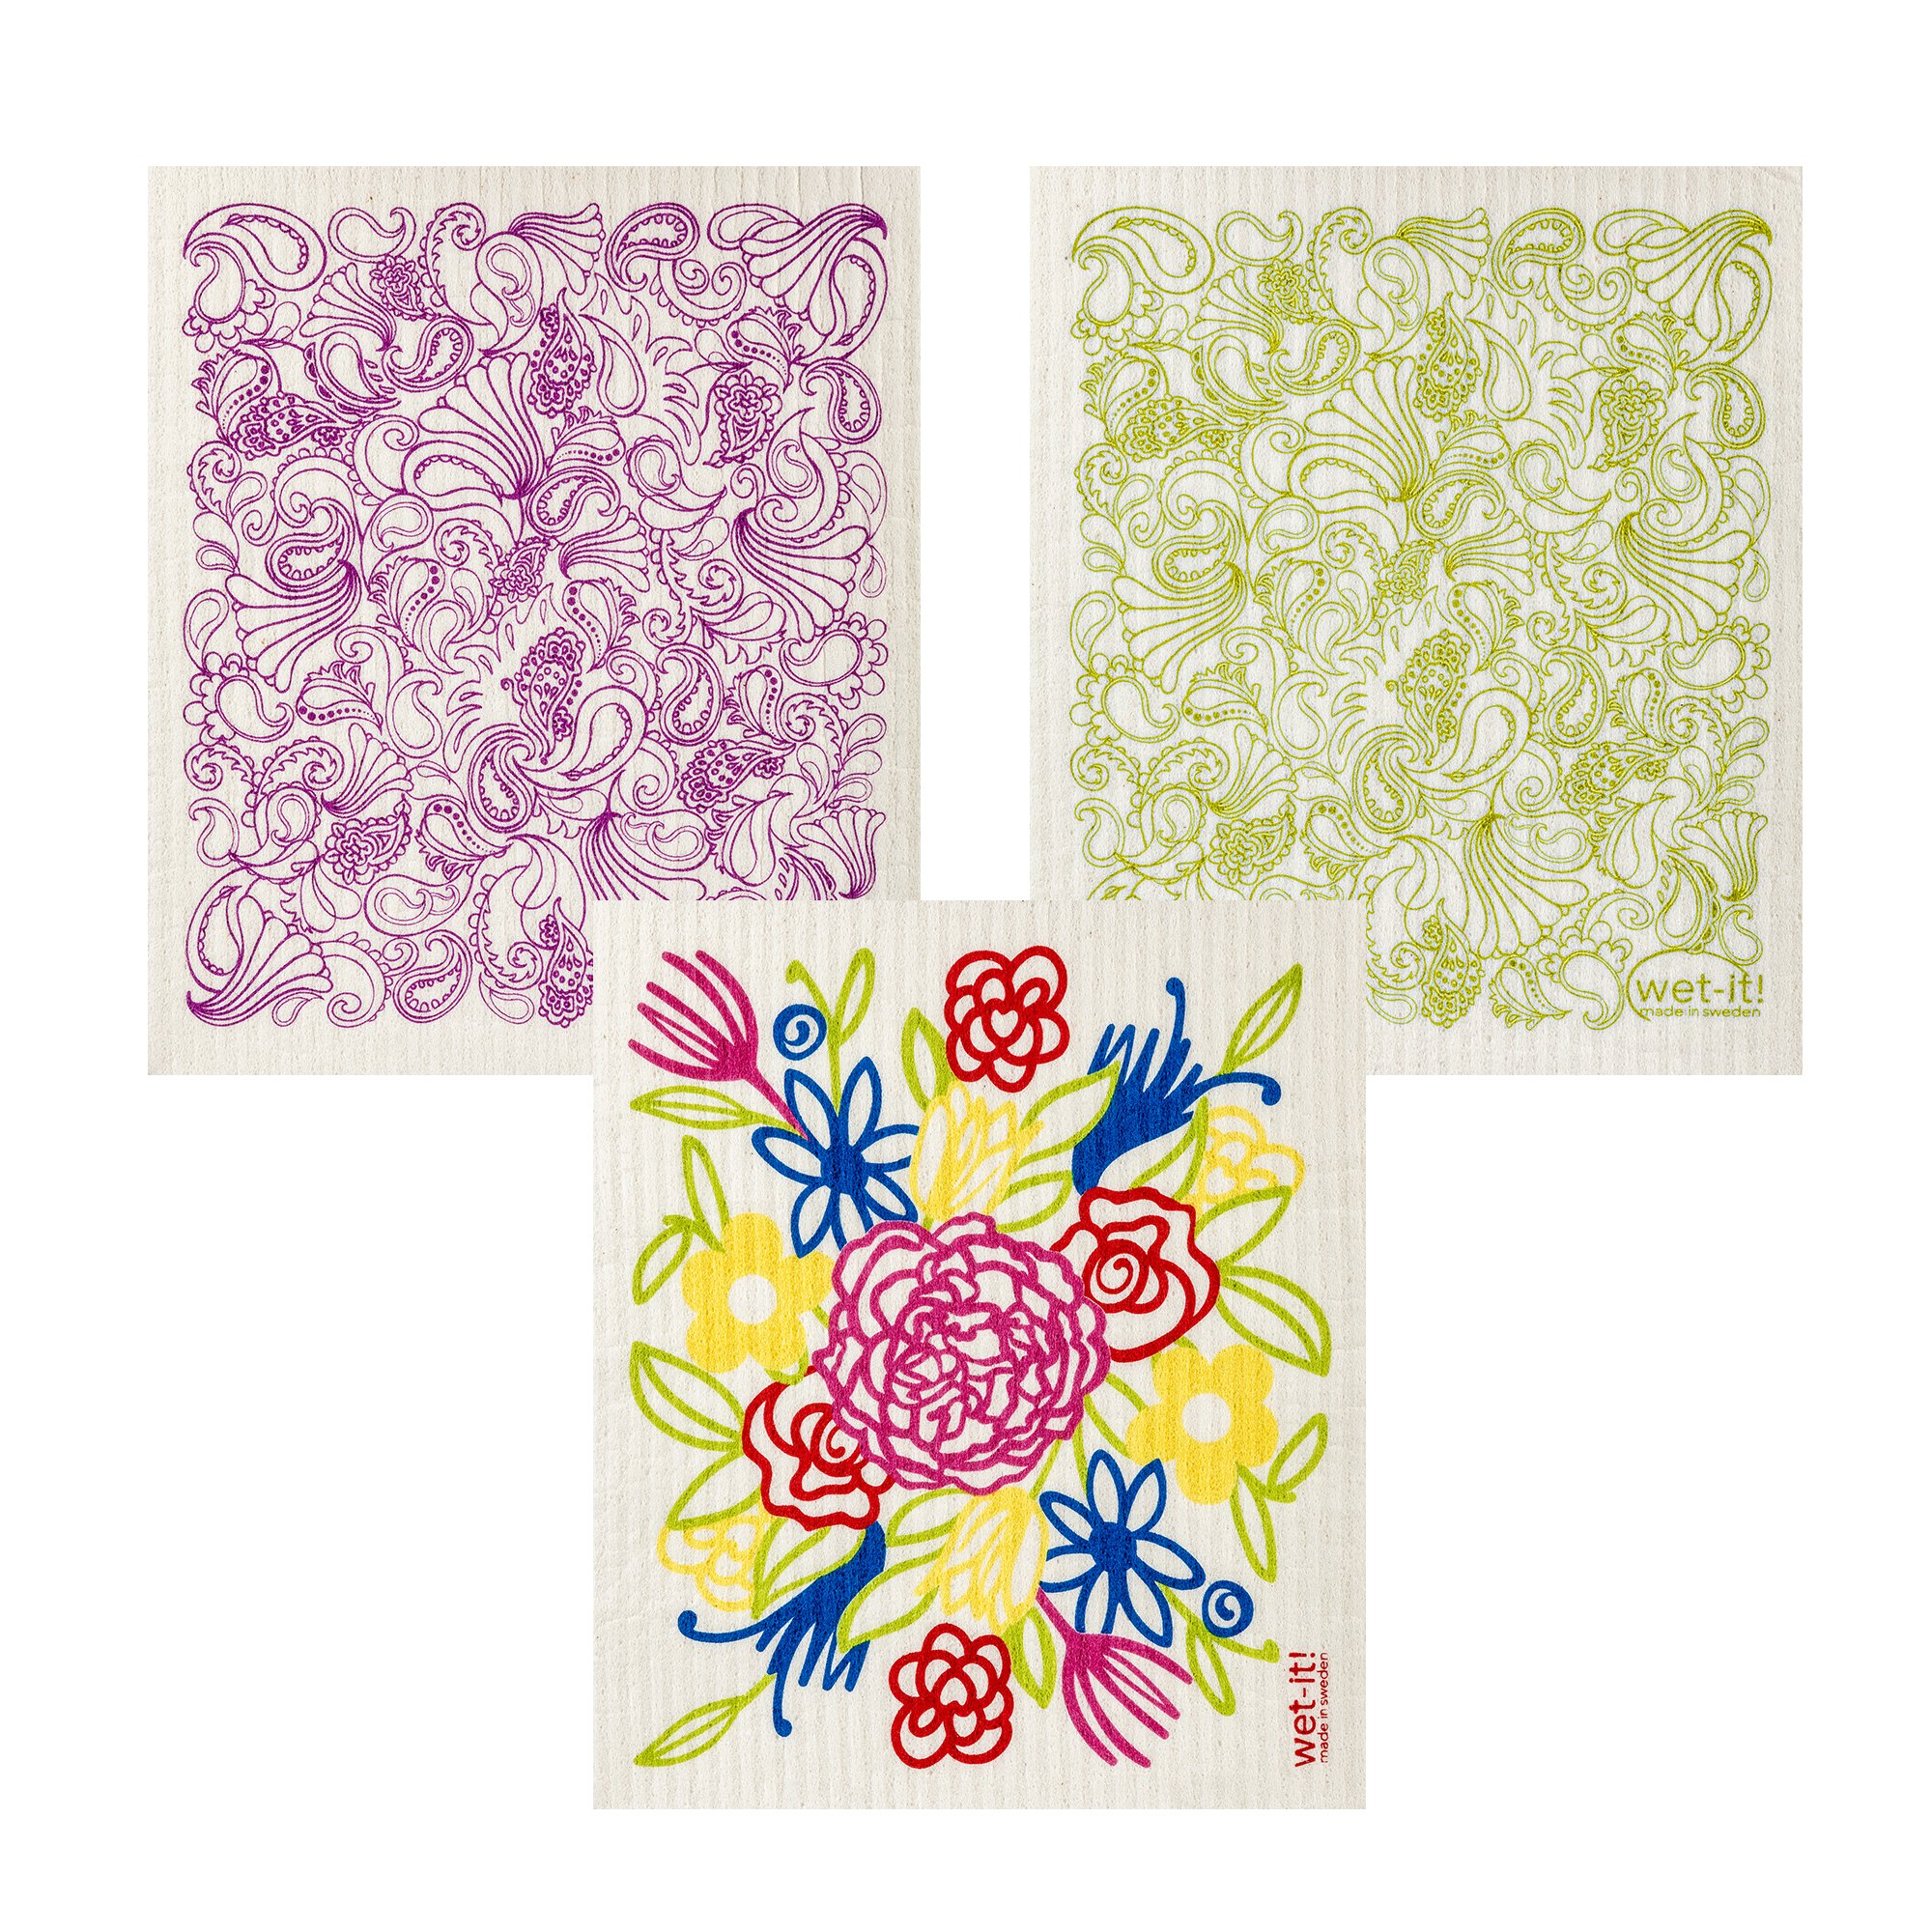 Wet-It Swedish Dishcloth Set of 3 (Flower Bouquet, Pink and Green Paisley)